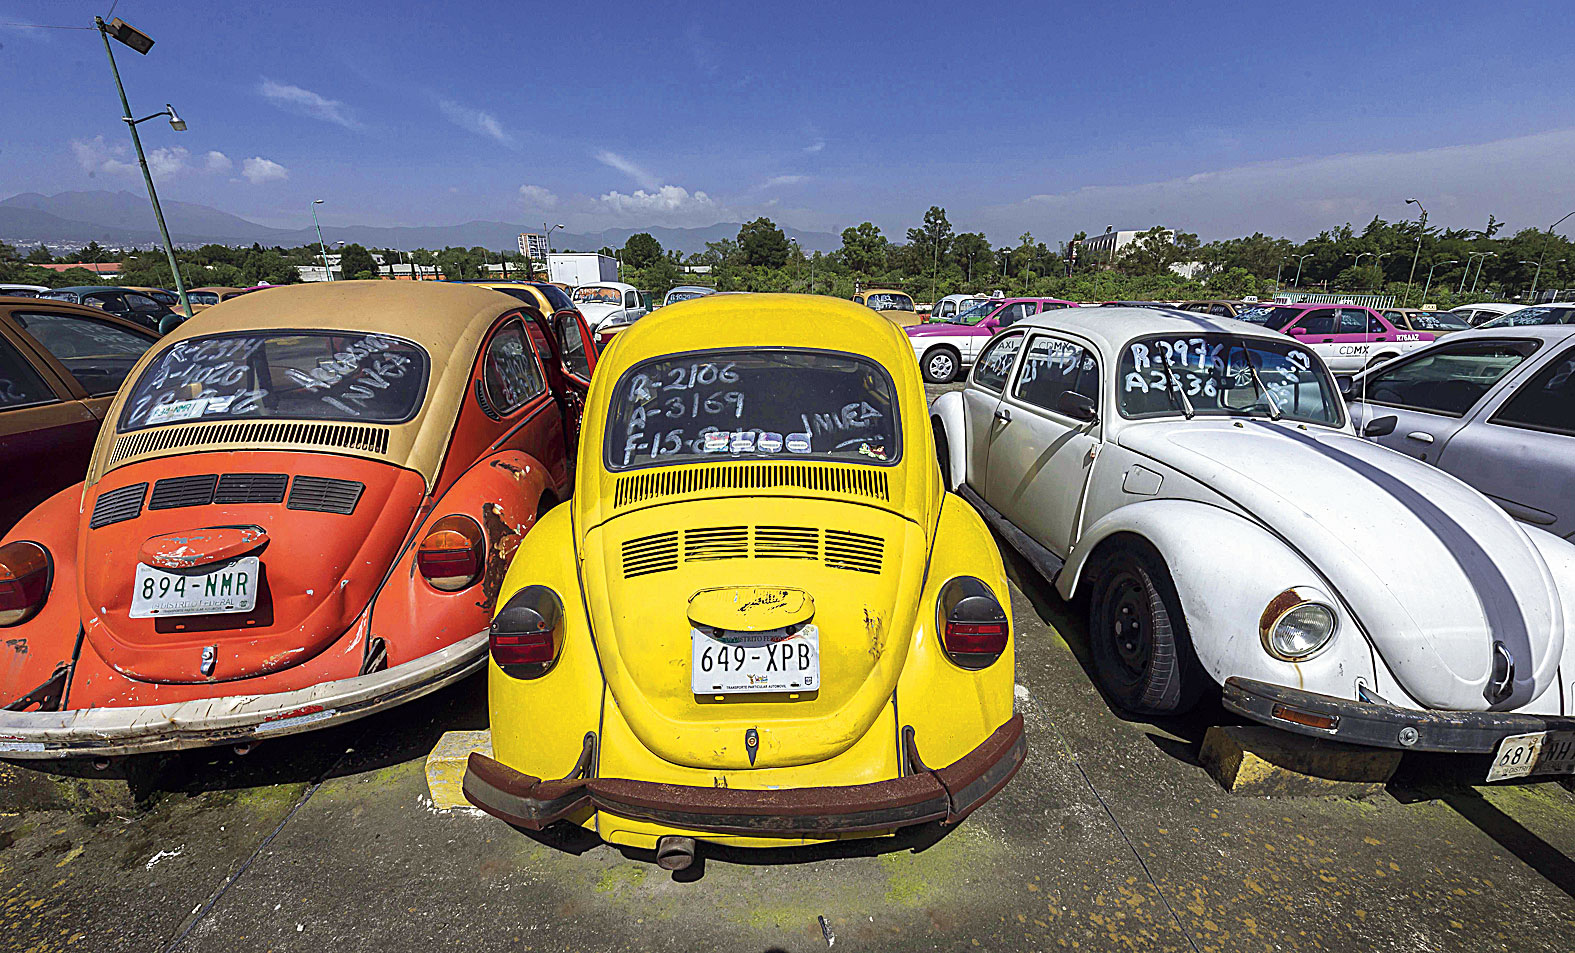 Old Volkswagen Beetle cars lined up in a large yard for impounded cars in Mexico City. Mexico was the last country in the world where Beetles of the original shape — with changes over the years — were manufactured